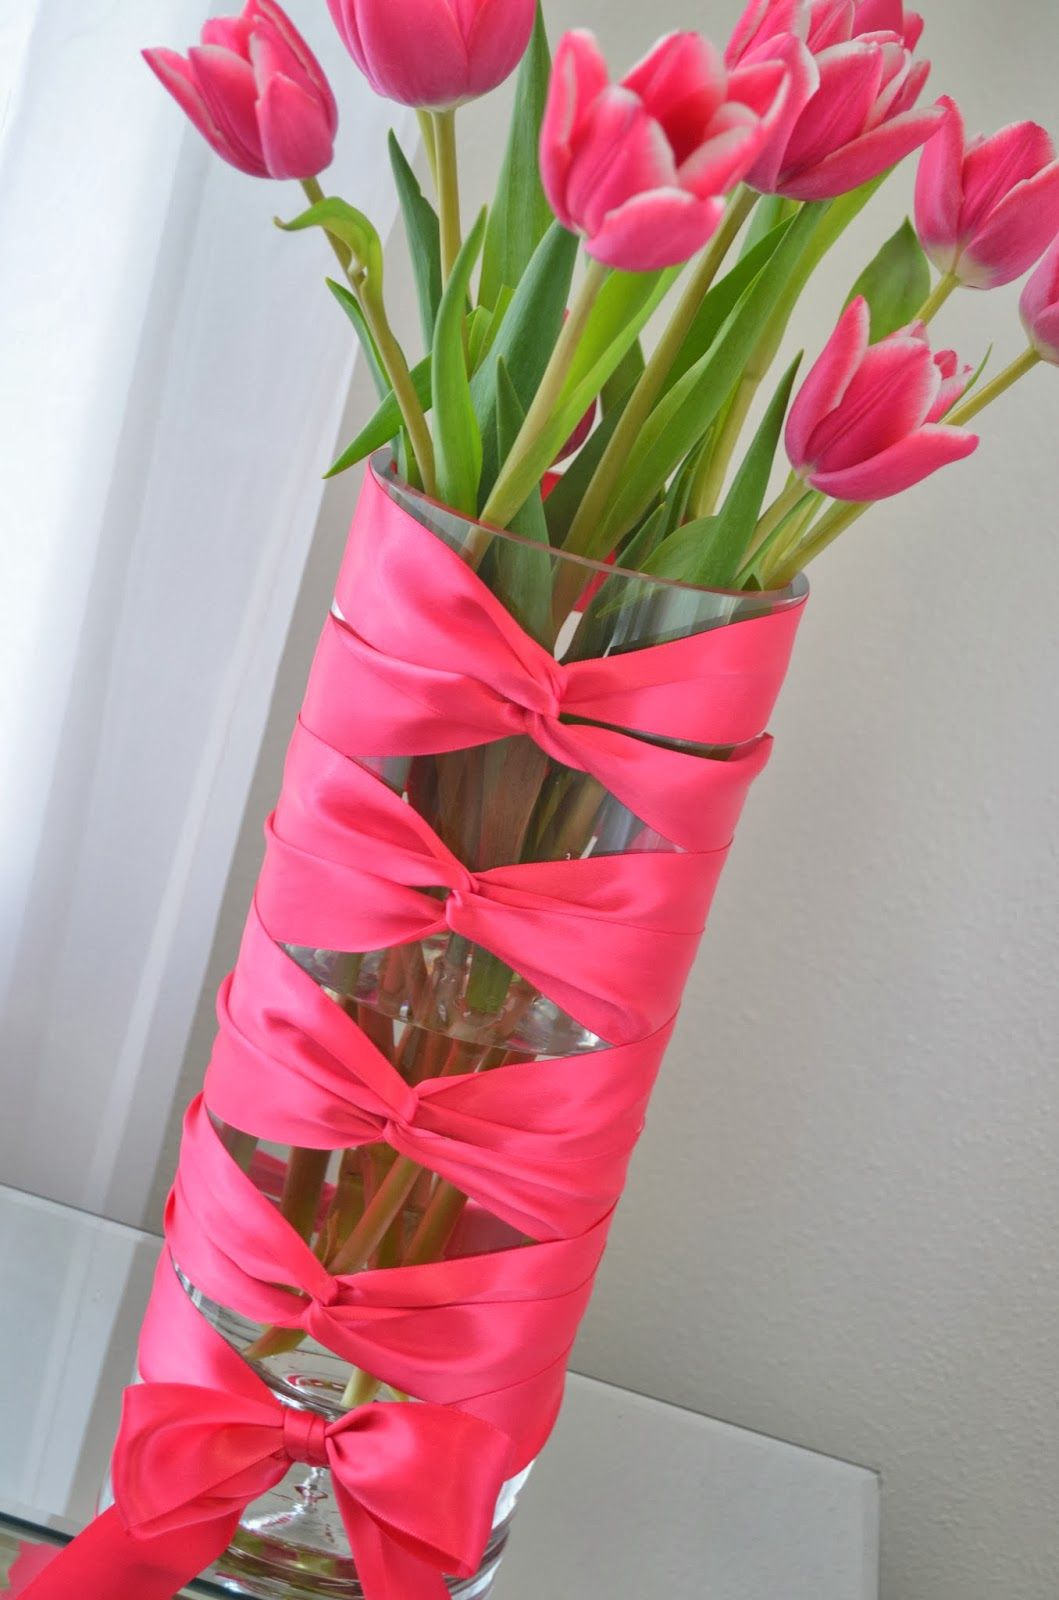 diy flower vase idea corset vase with tulips decor